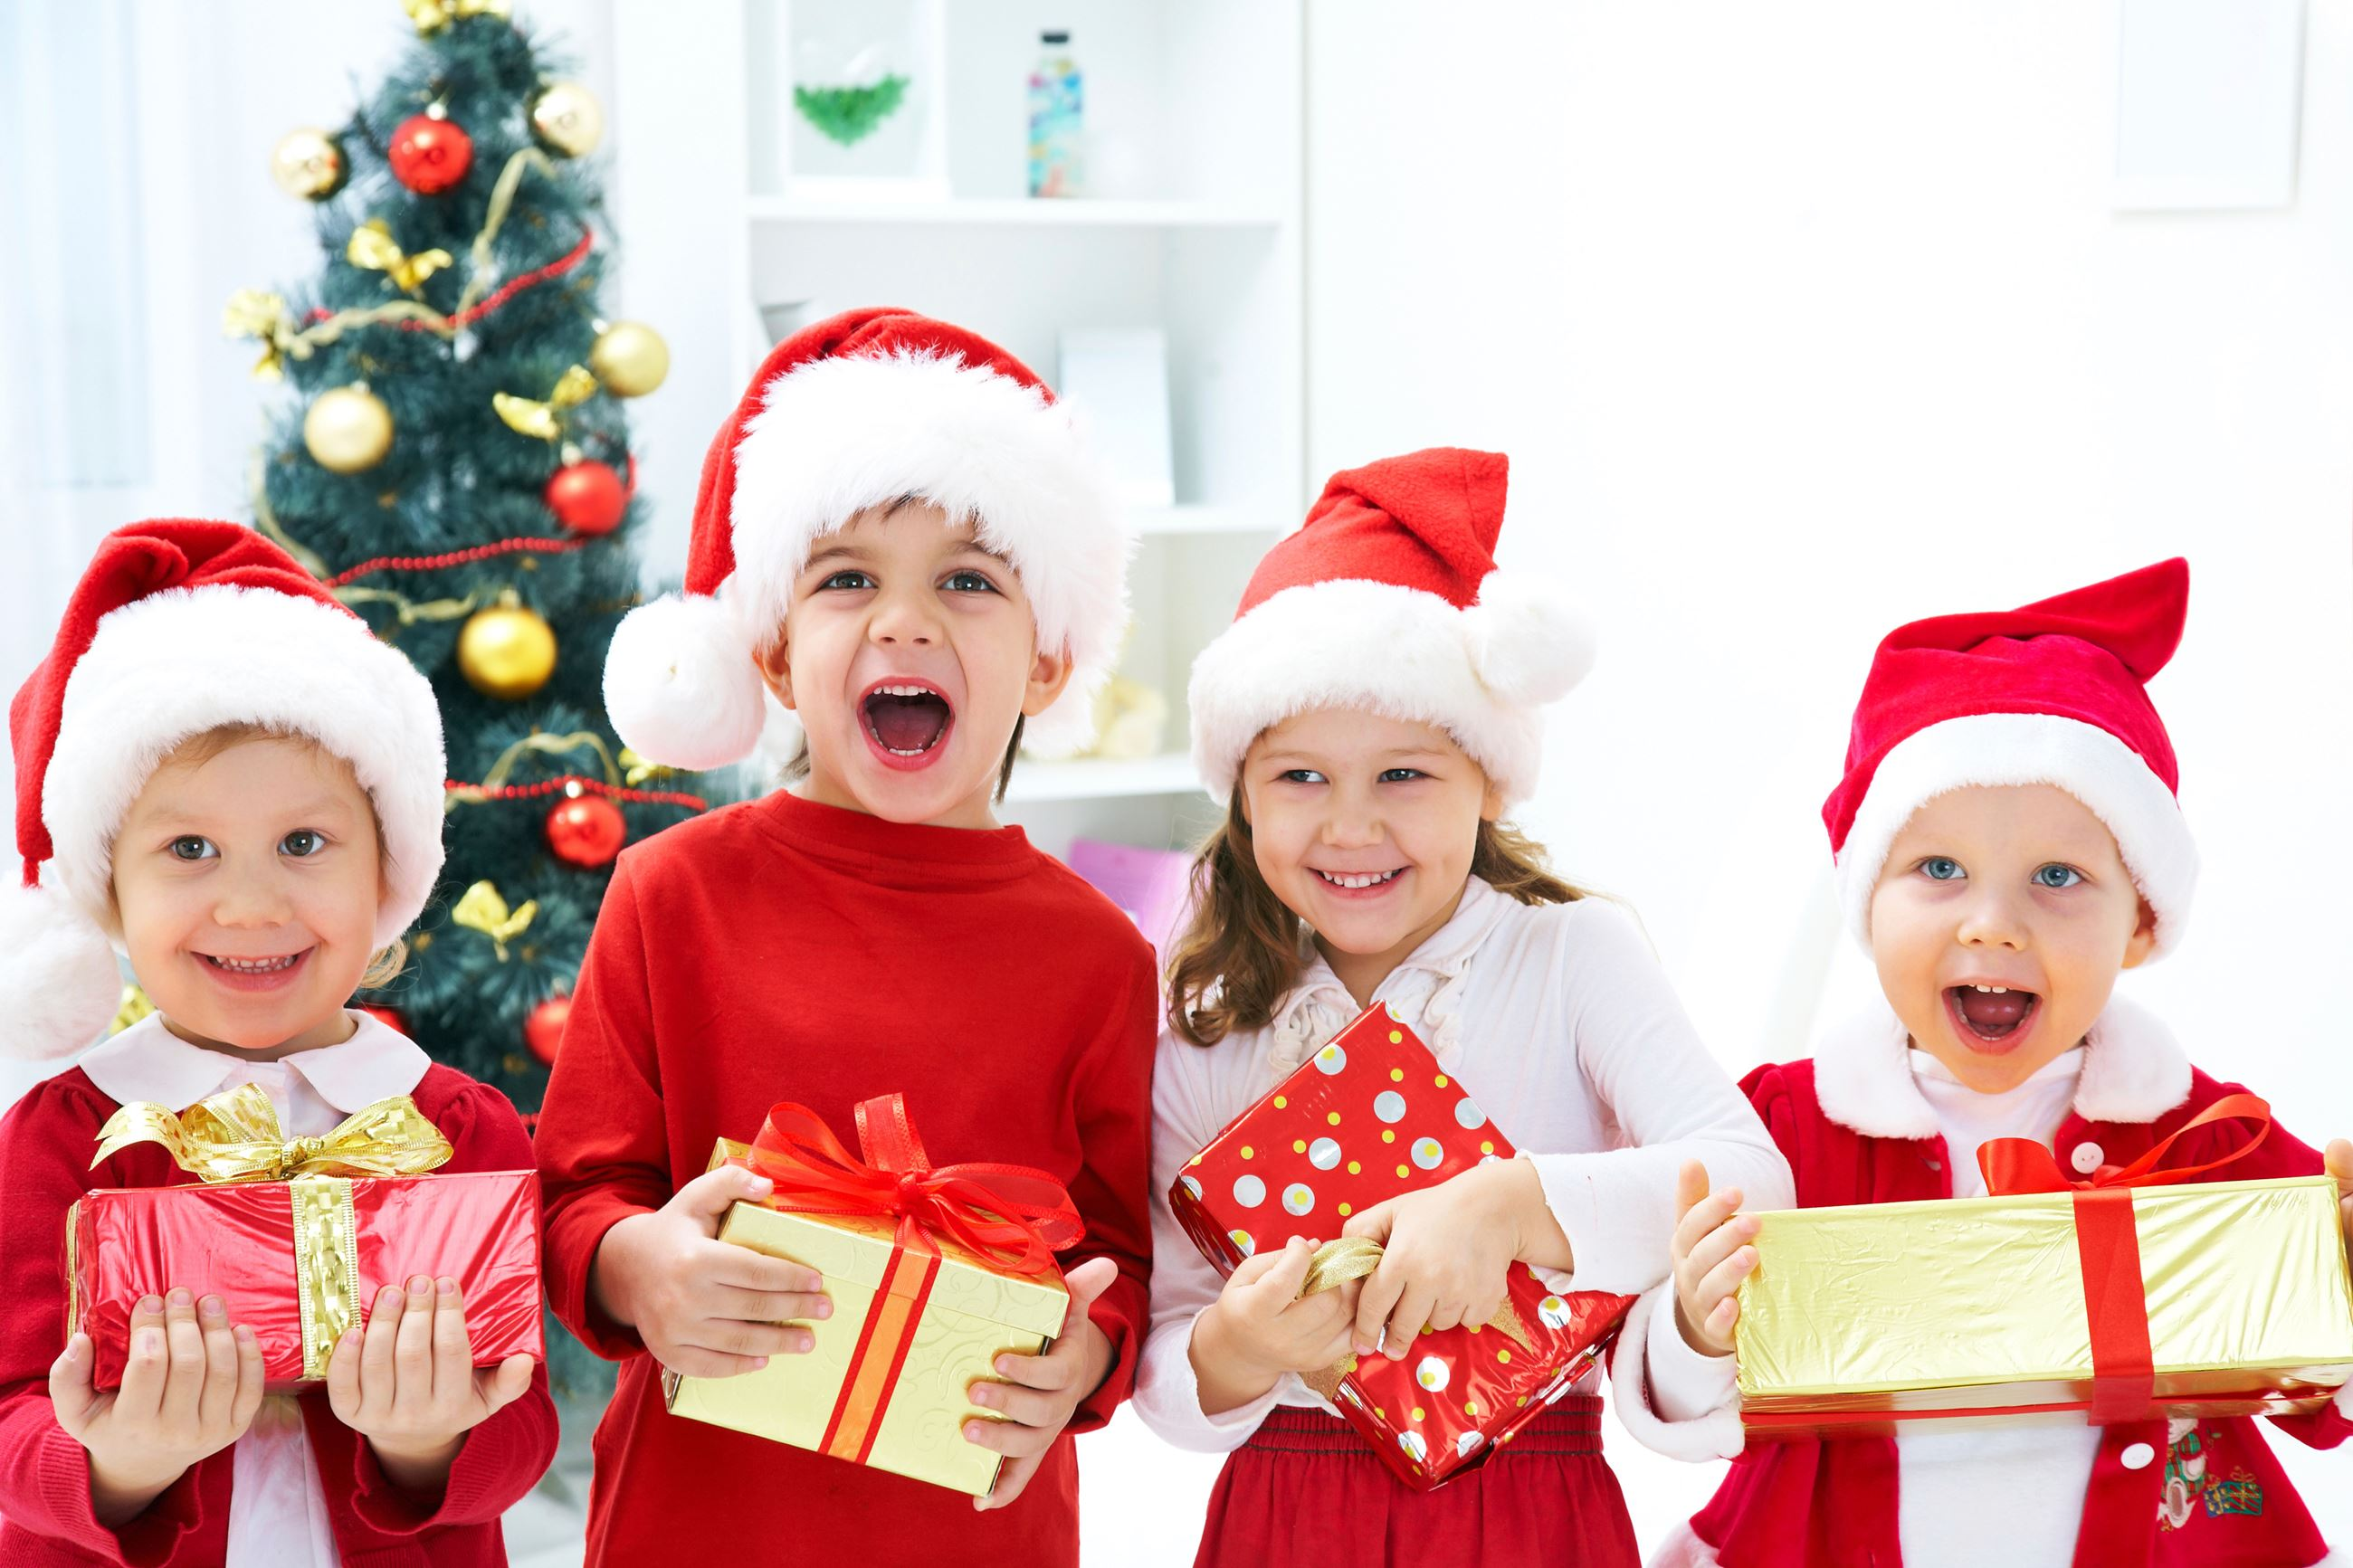 Four young kids wearing Santa hats and holding presents